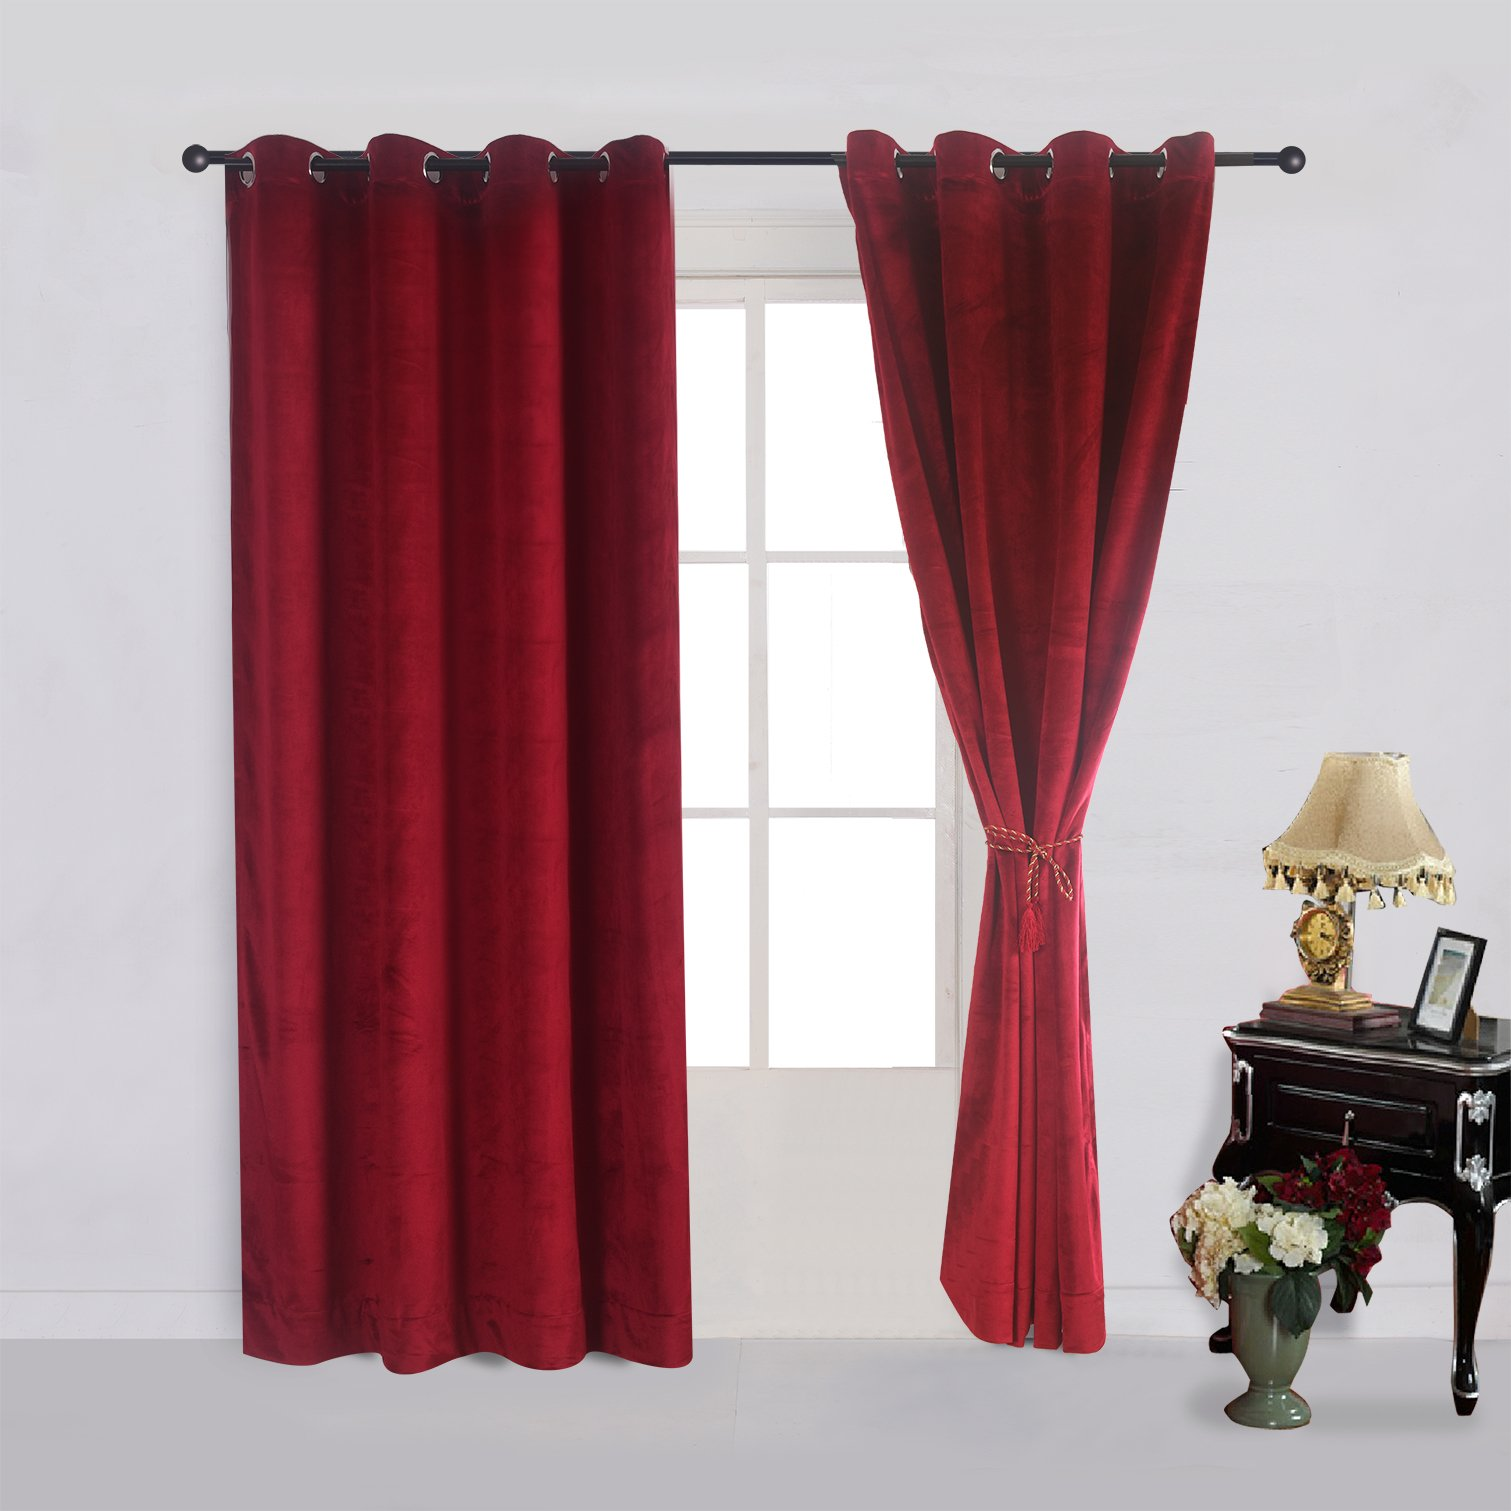 Cherry Home Set of 2 Classic Blackout Velvet Curtains Panels Home Theater Grommet Drapes Eyelet 52Wx63L-inch Red(2 panels)Theater  Bedroom  Living Room  Hotel by Cherry Home (Image #3)